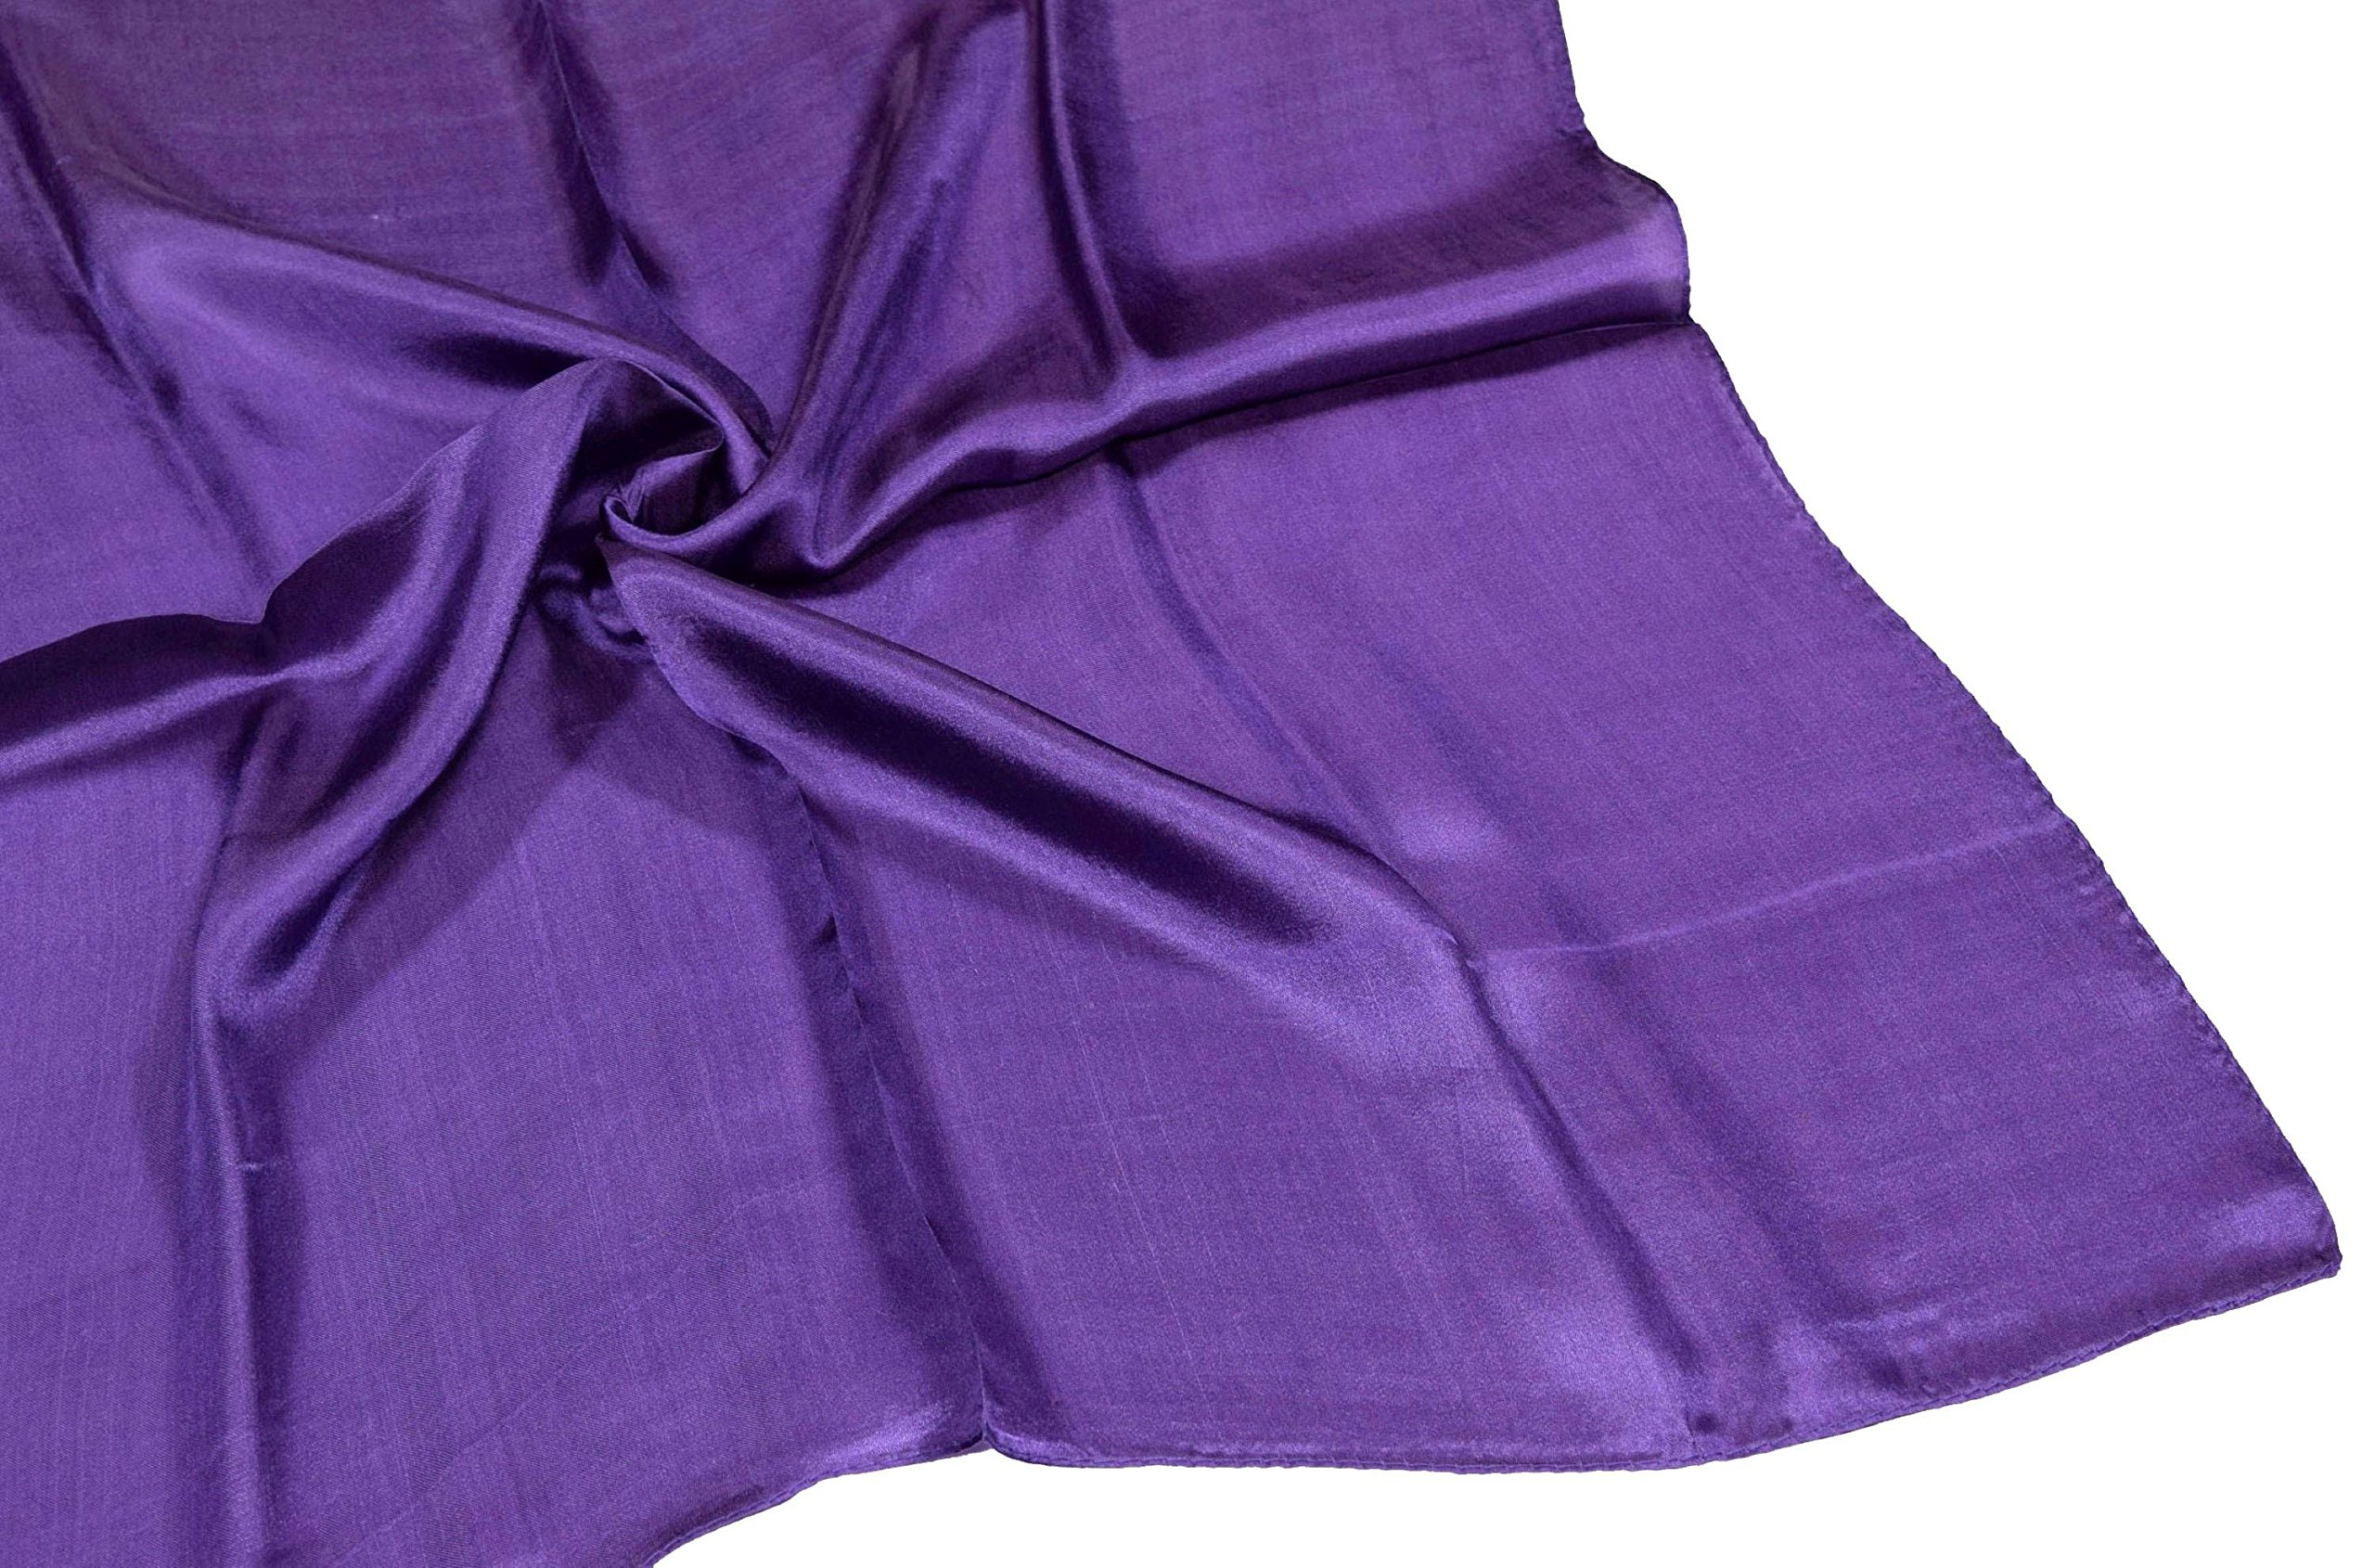 Deep Purple Small Fine Silk Square Scarf by Bees Knees Fashion (Image #4)